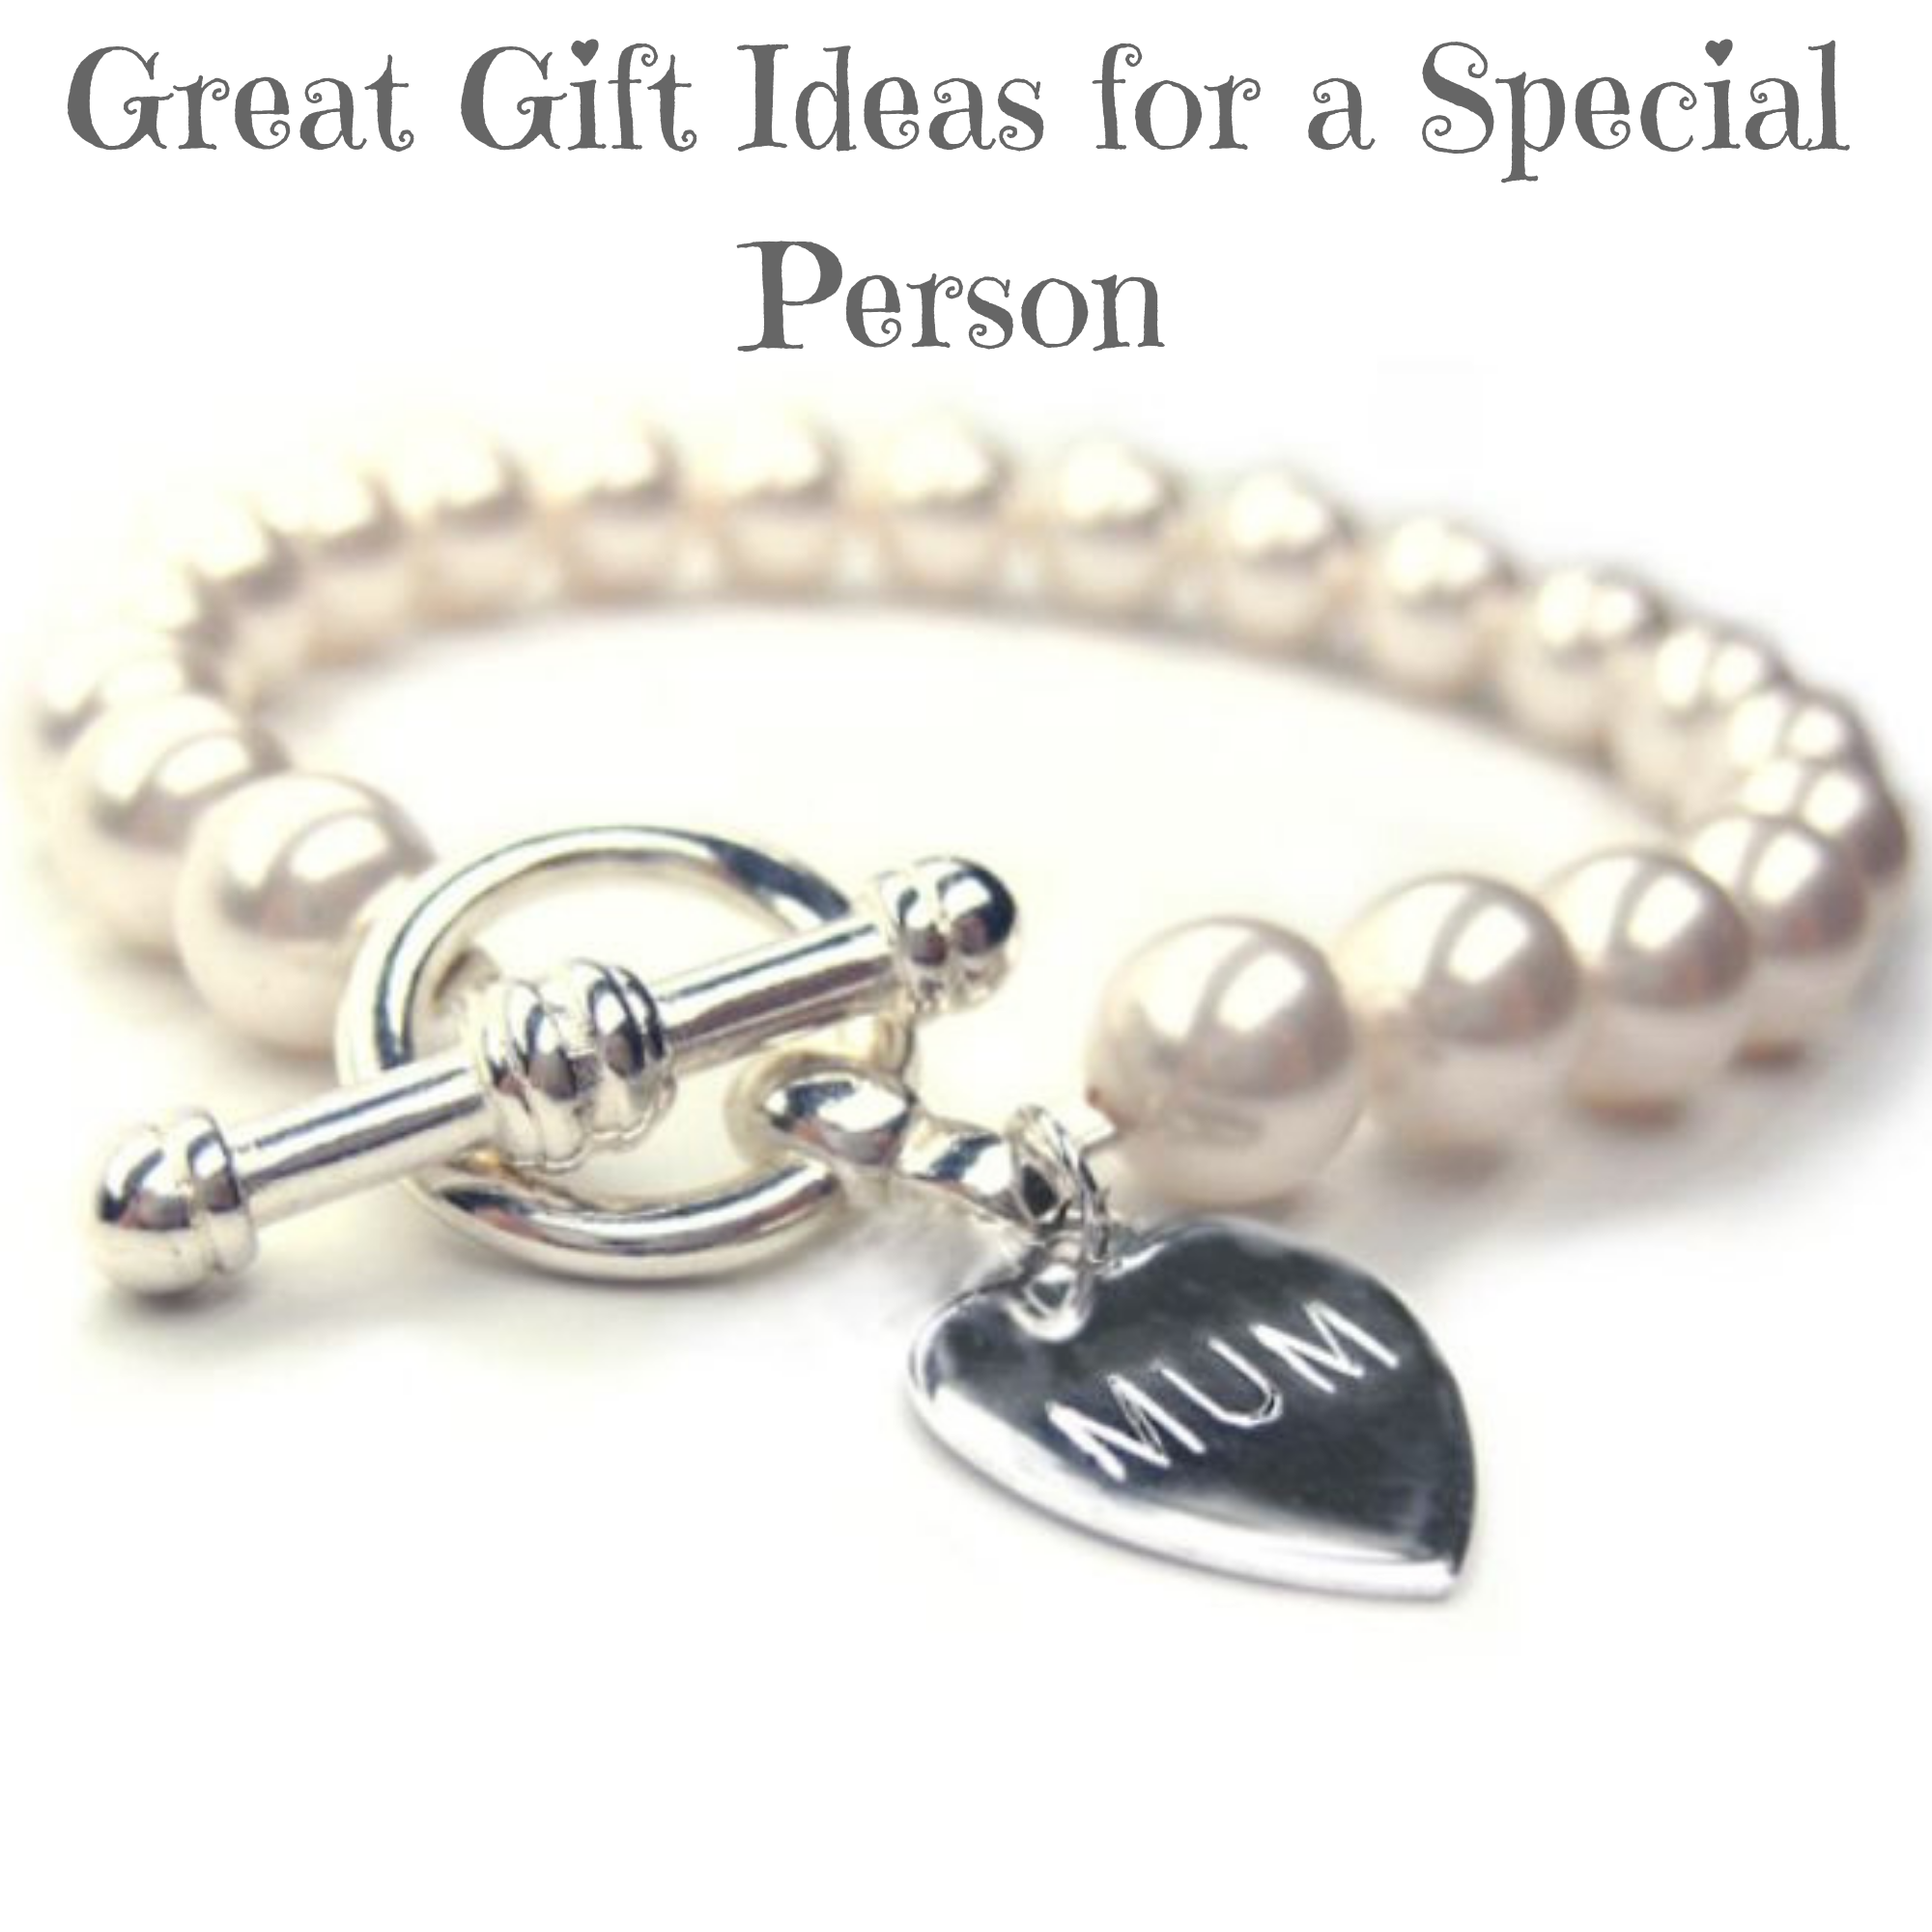 Great Gift Ideas for a Special Person